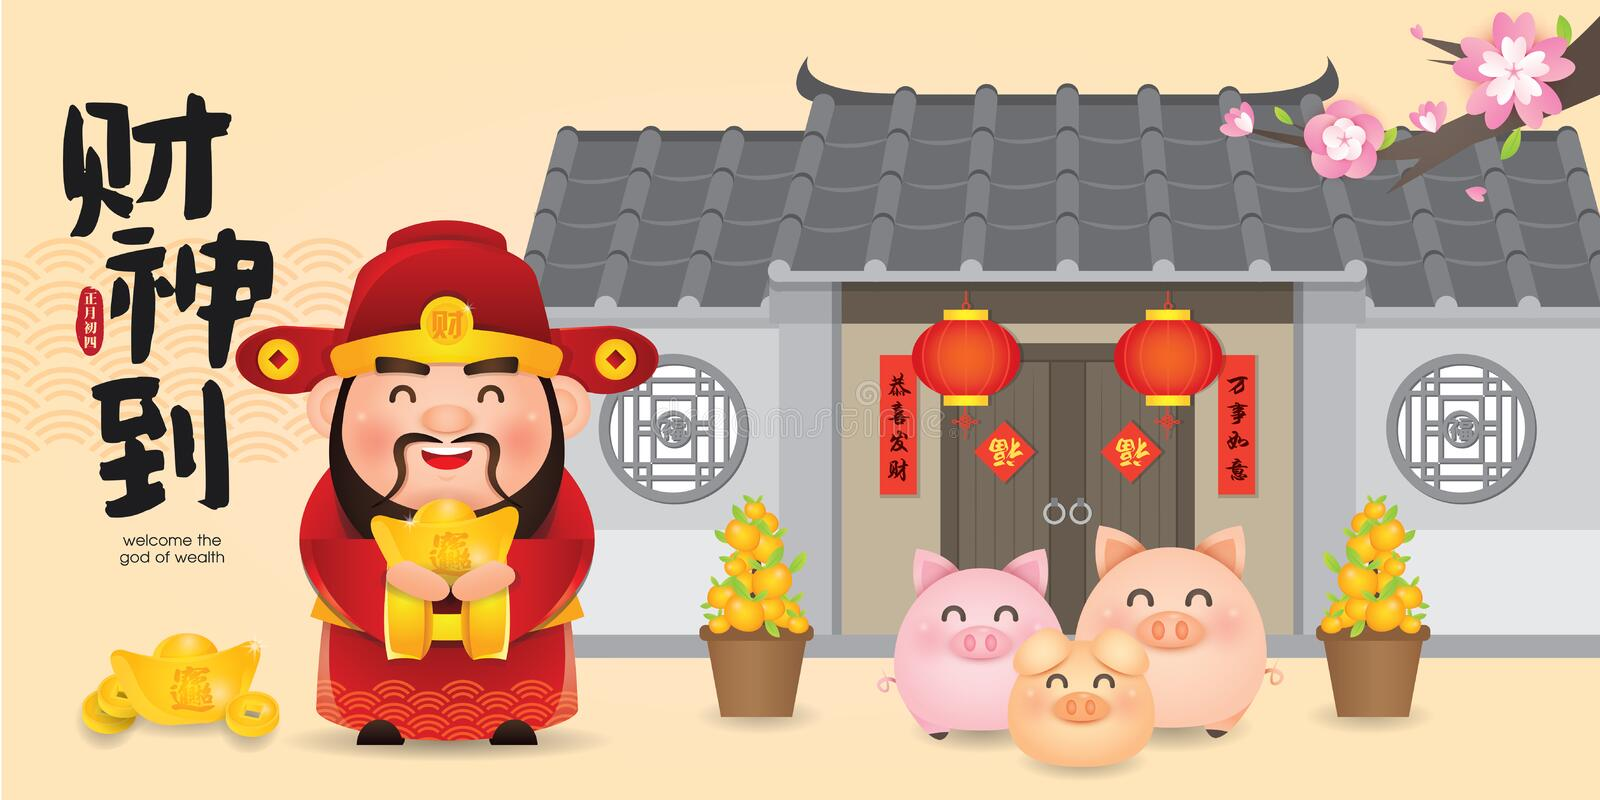 Chinese New Year Vector Illustration with Chinese God of Wealth. Translation: Welcome the God of Wealth vector illustration